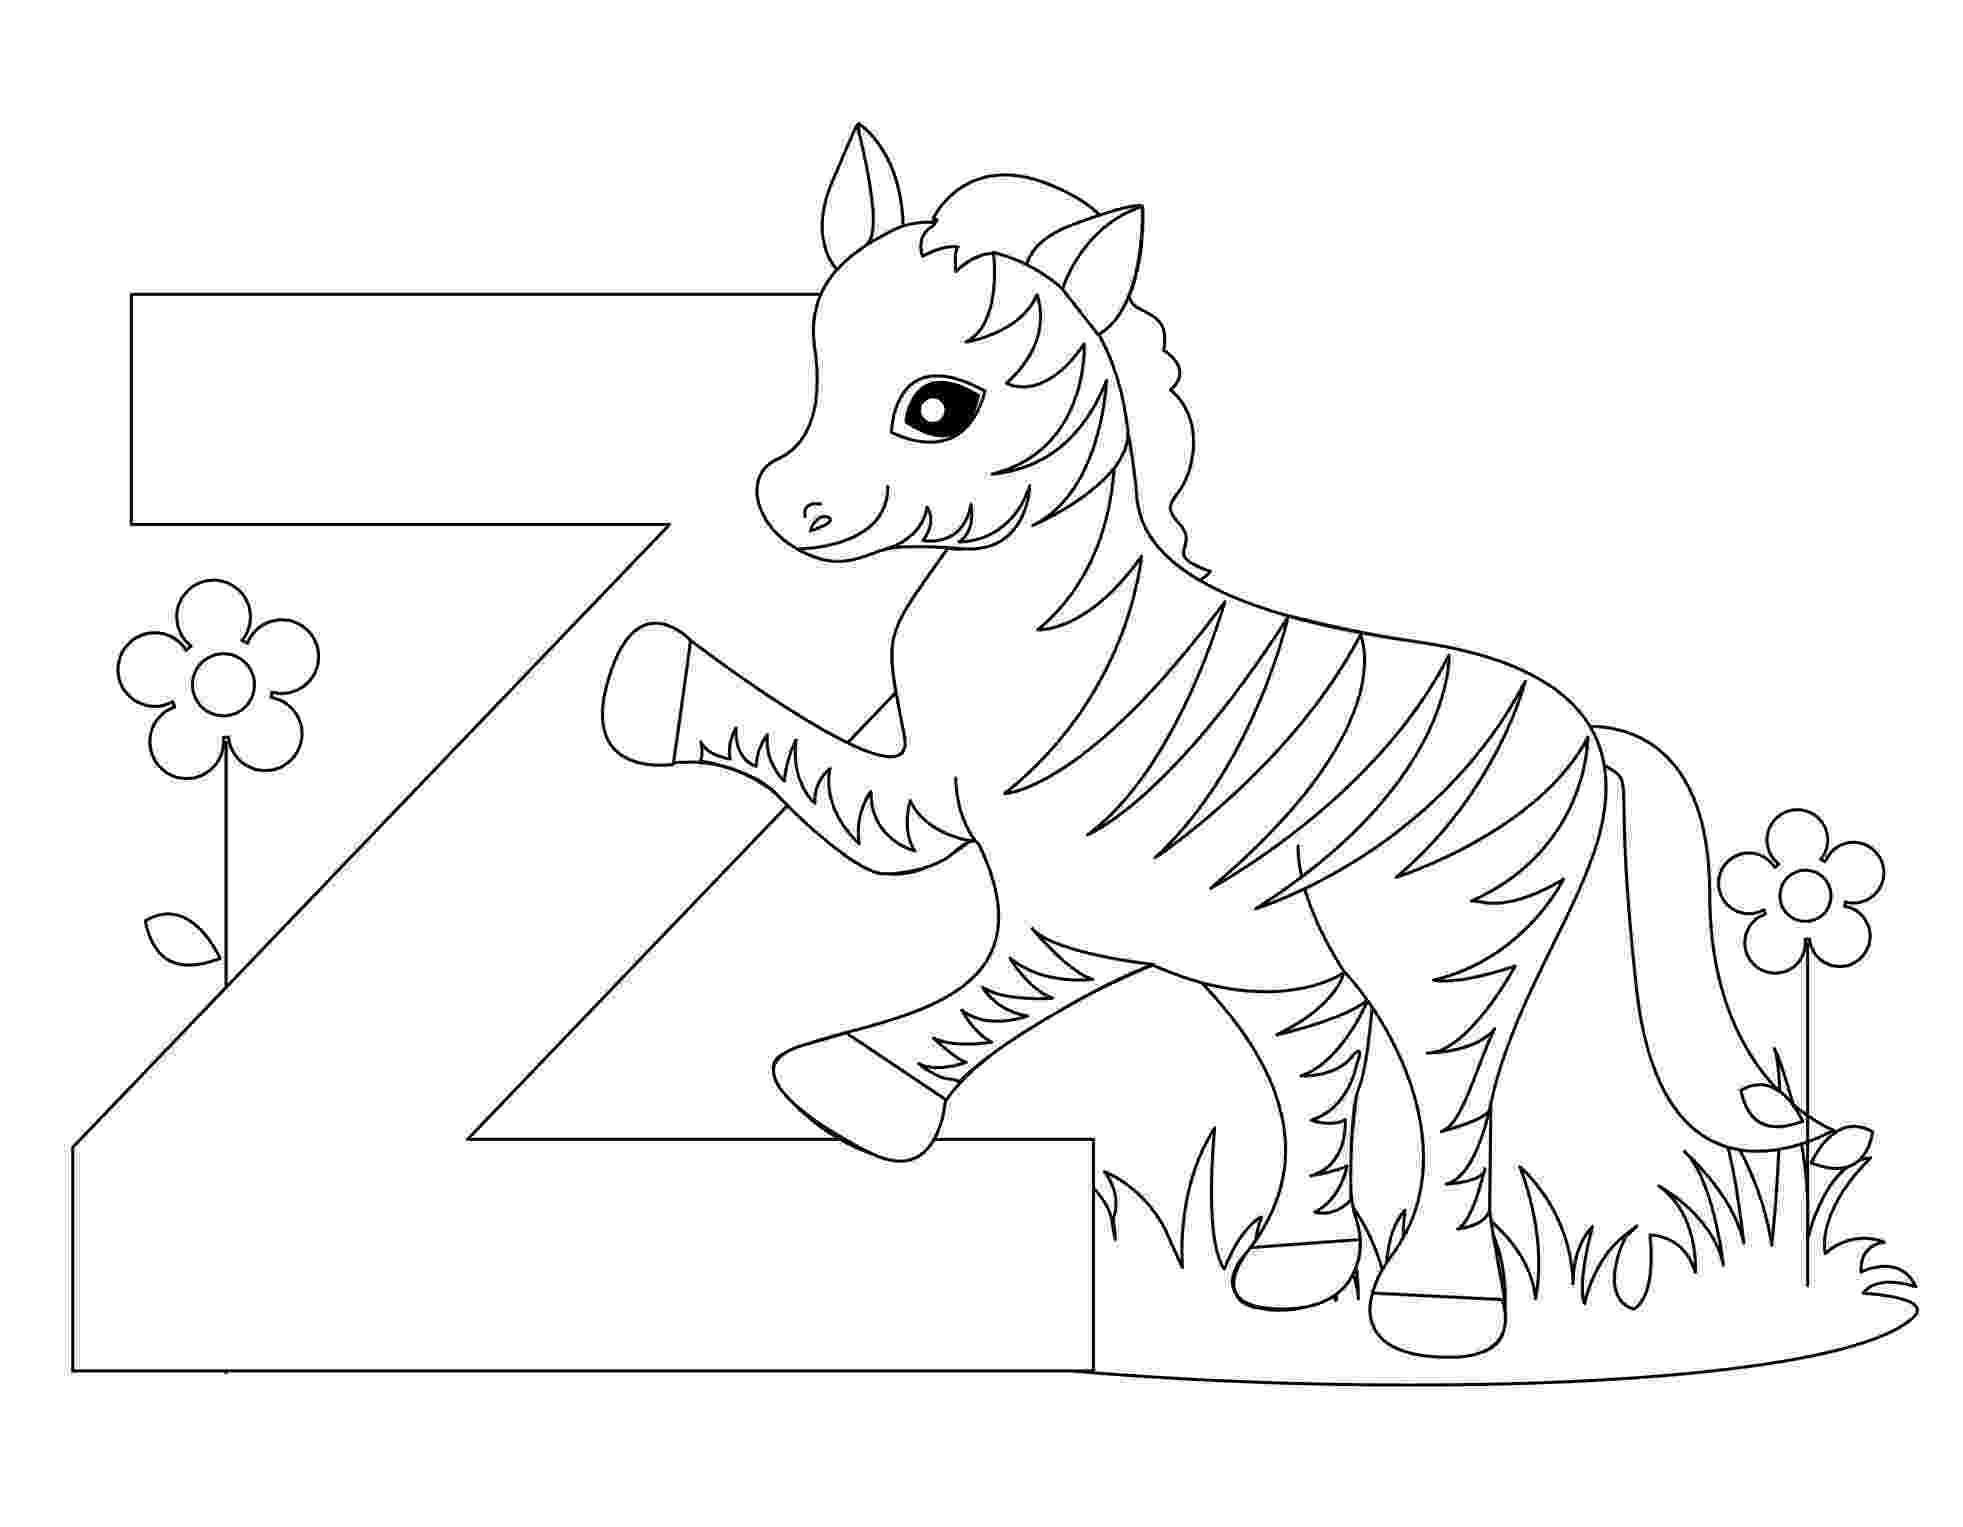 abc coloring book printable a z alphabet coloring pages download and print for free printable abc coloring book